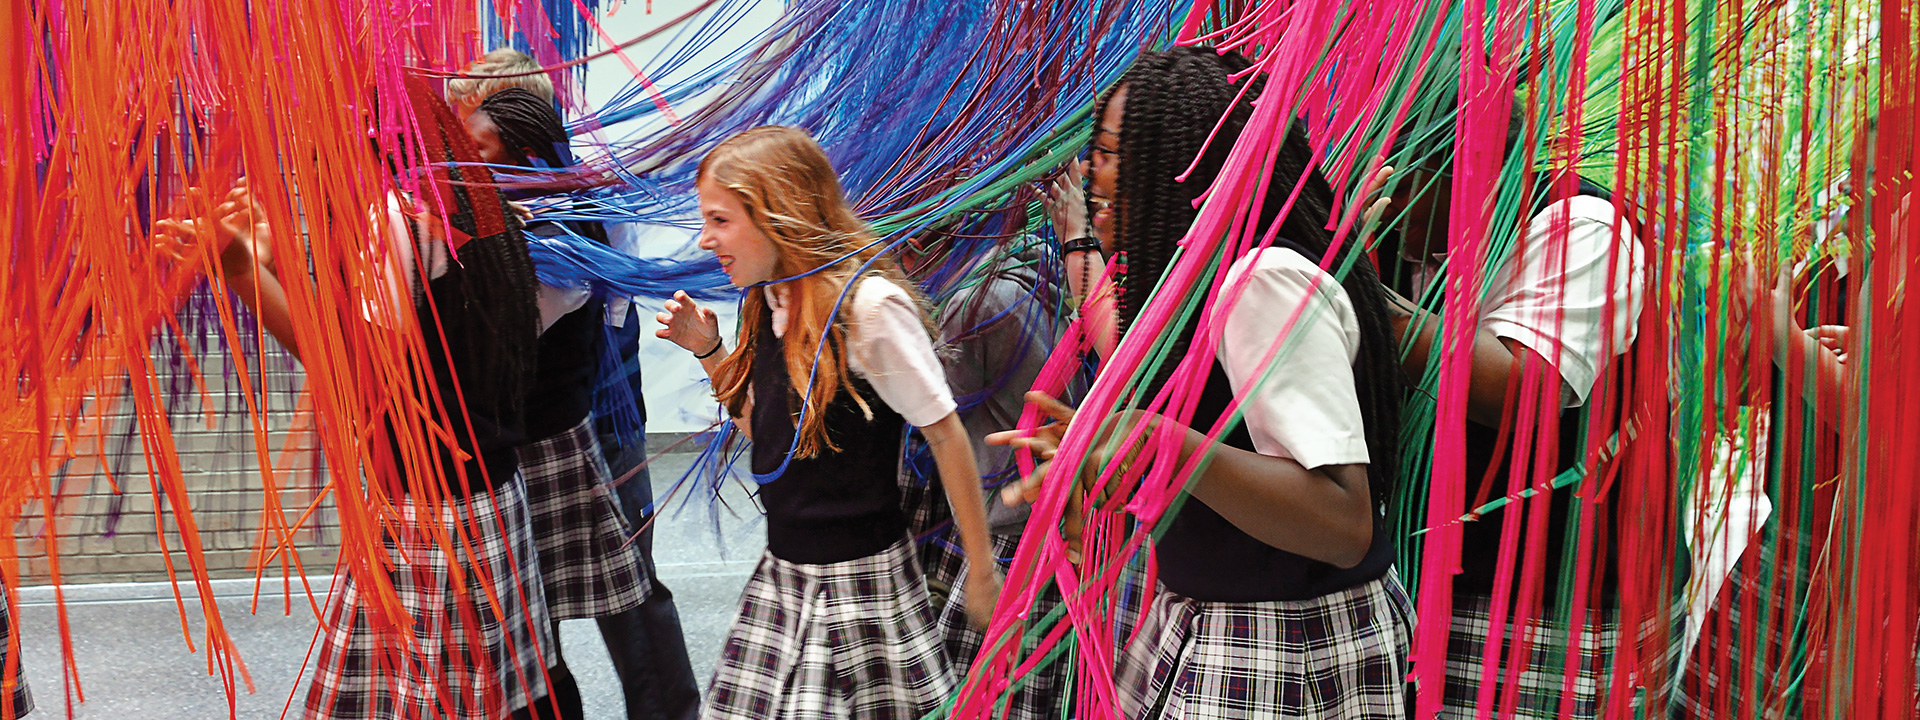 School group interacting with an art installation